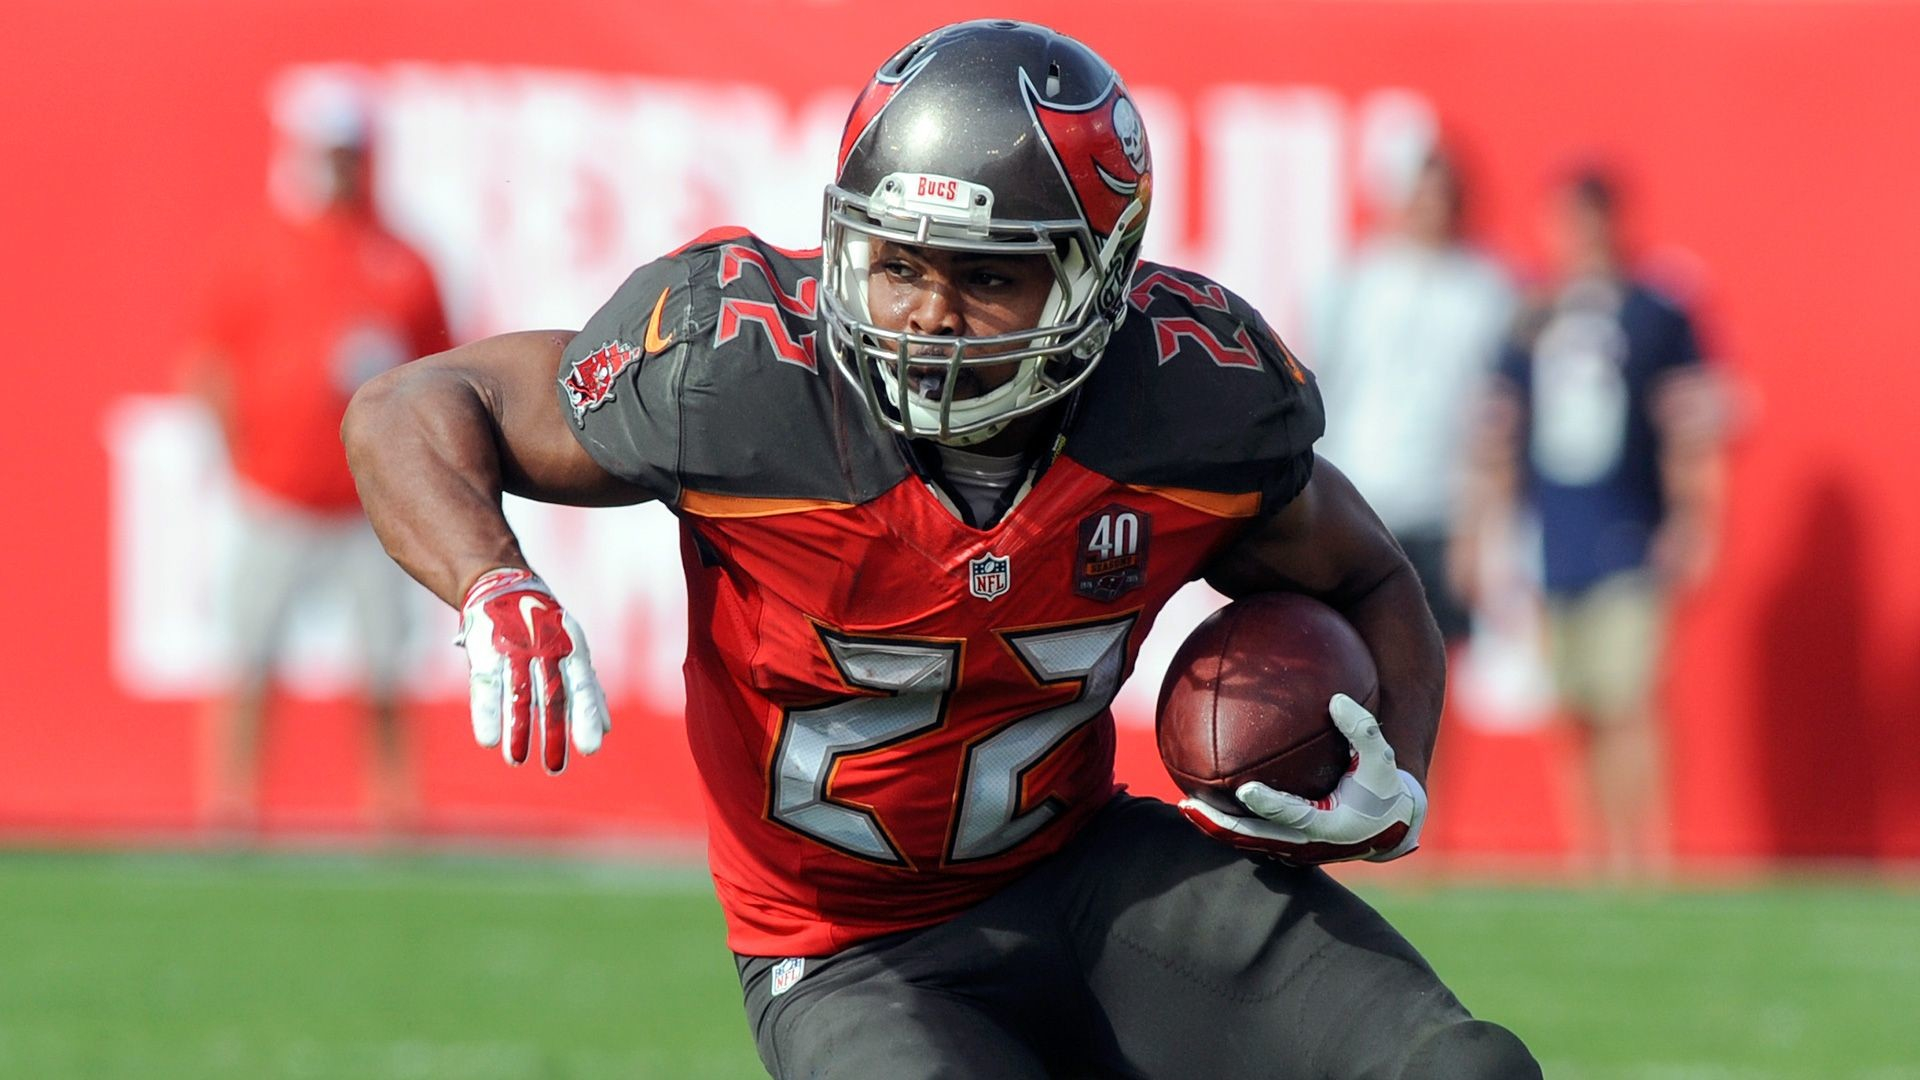 1920x1080 Injury updates for Doug Martin, Tyler Eifert, Dion Lewis, Eddie Lacy others  for Week 7 fantasy football